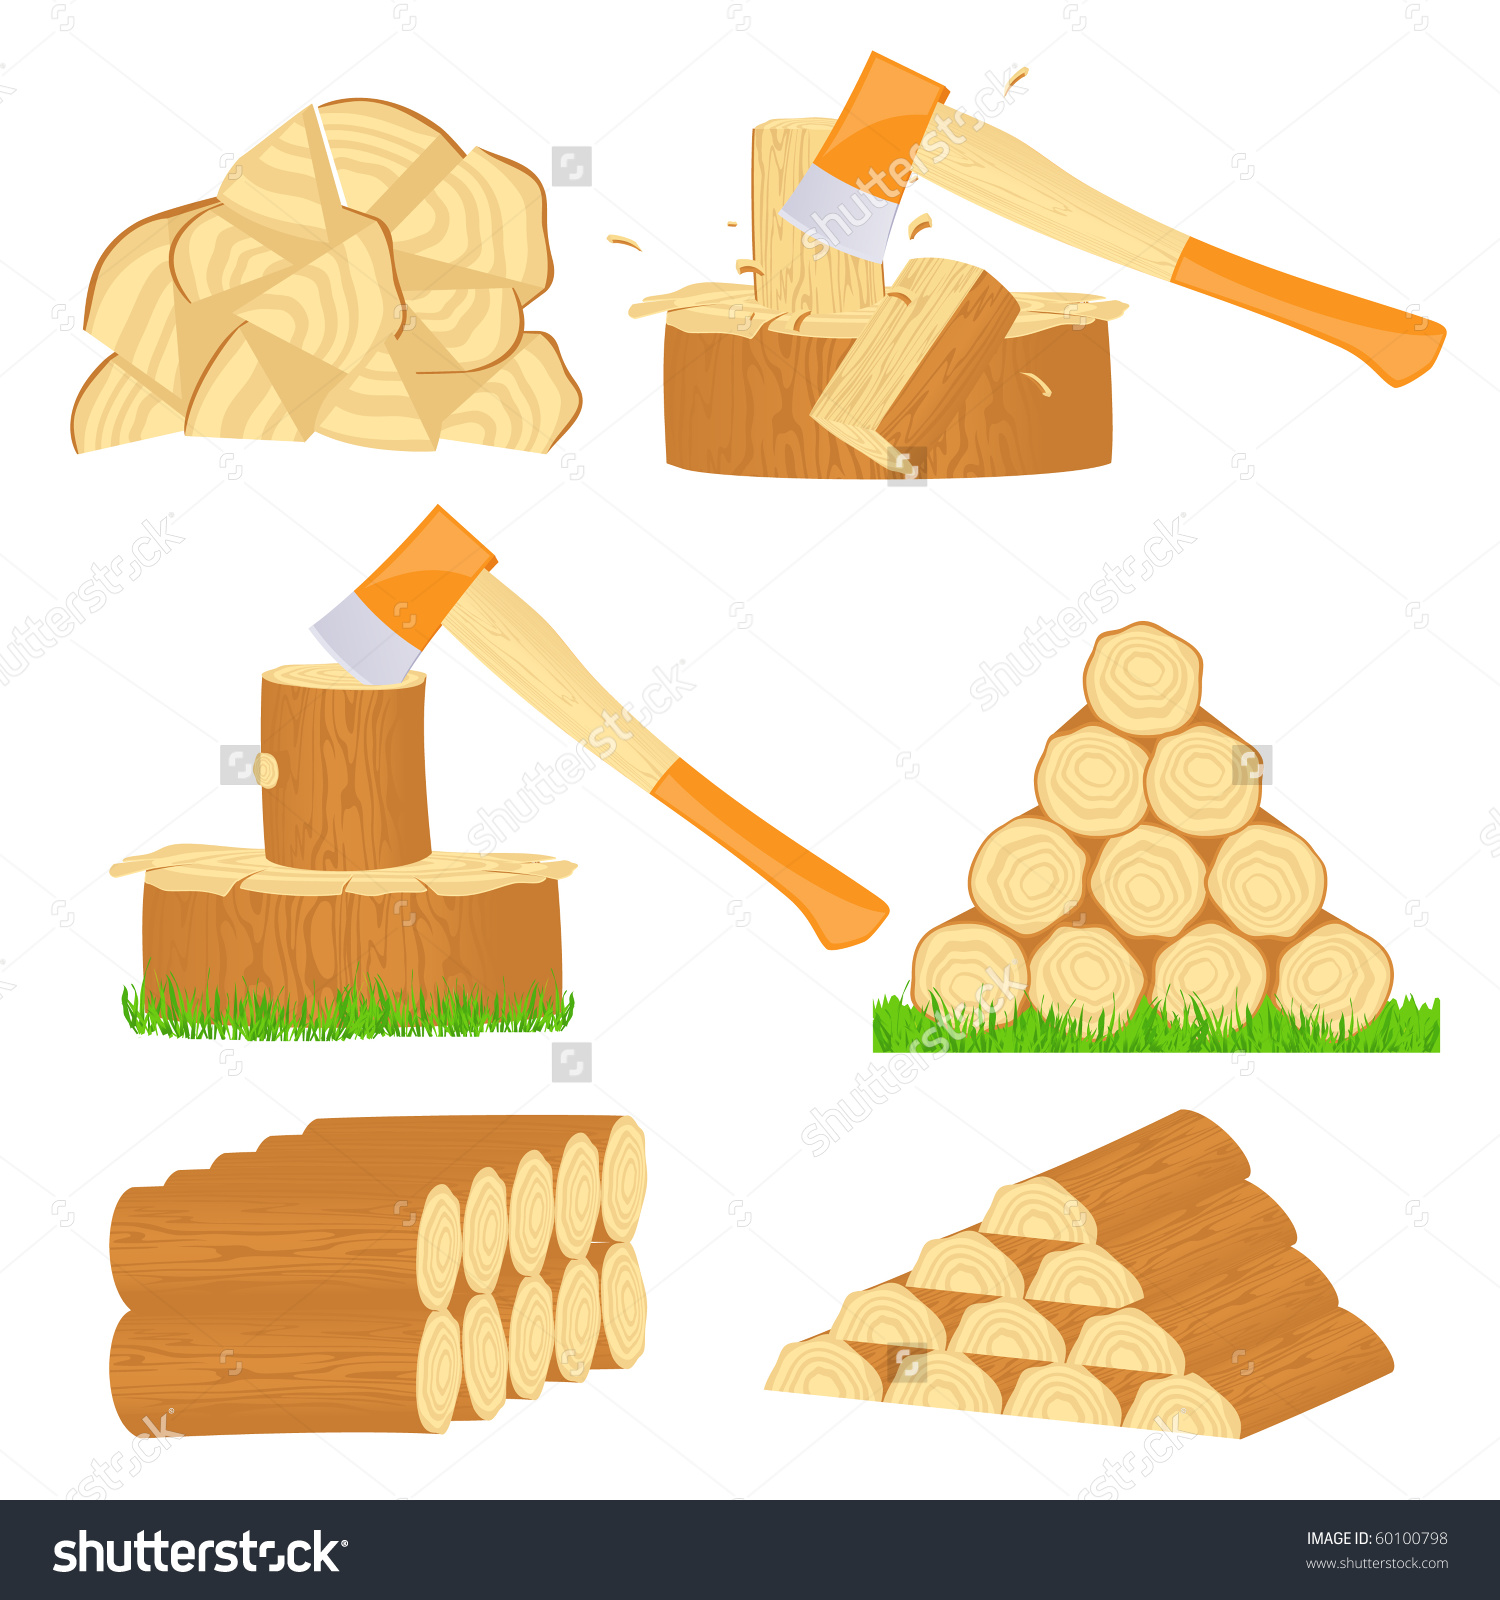 Wood chips clipart clipground